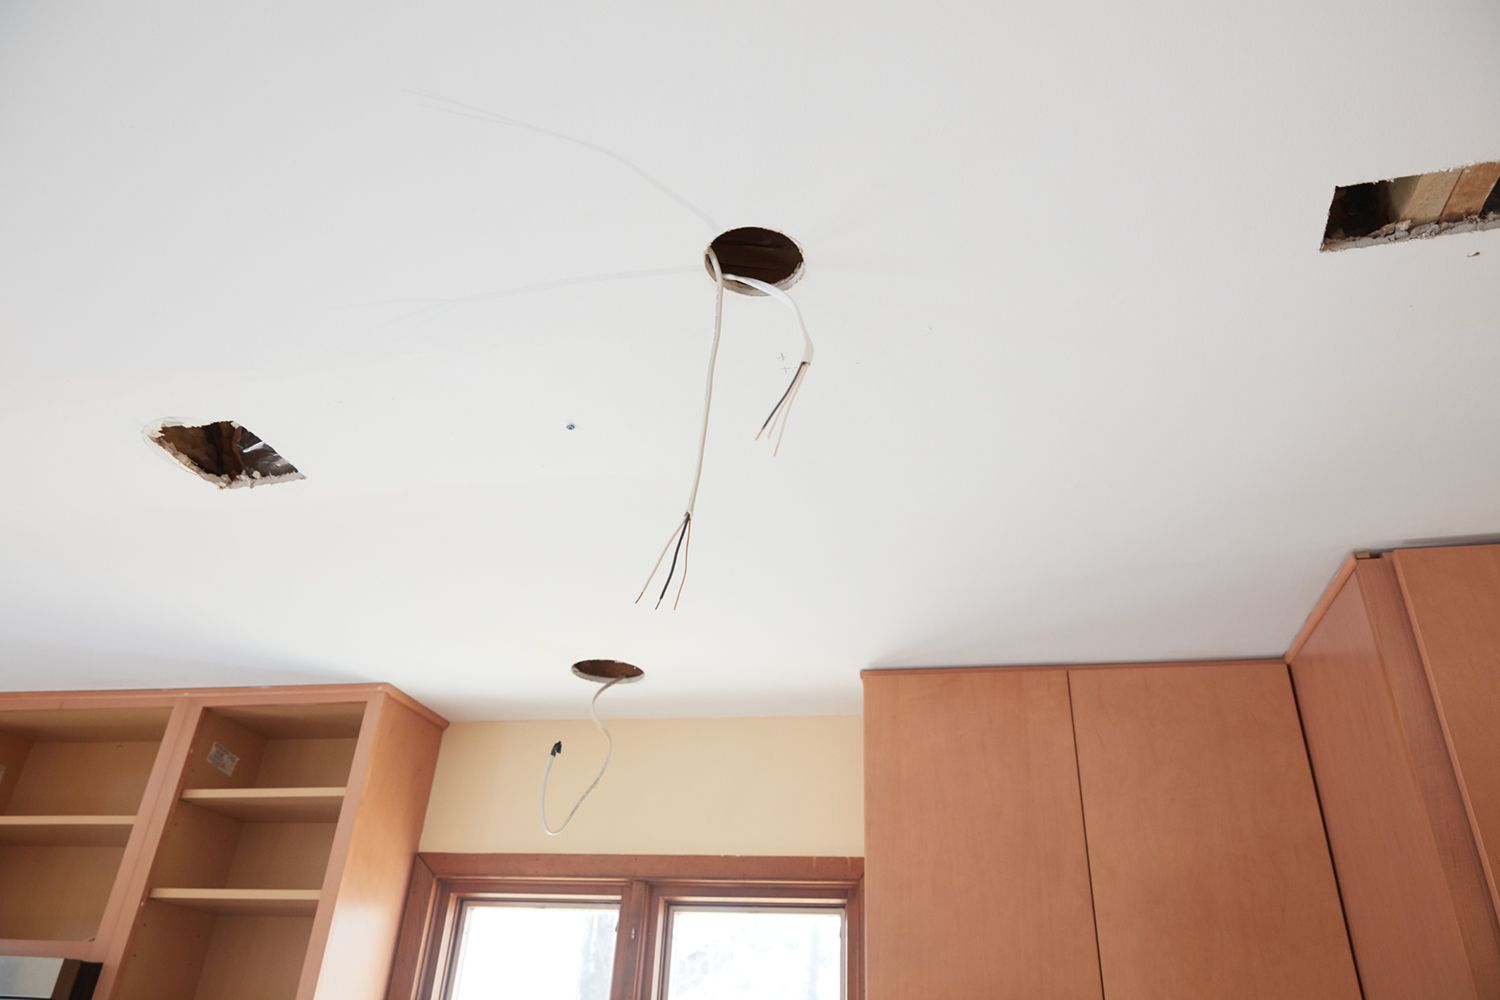 Ceiling with exposed recessed lighting holes and wires hanging